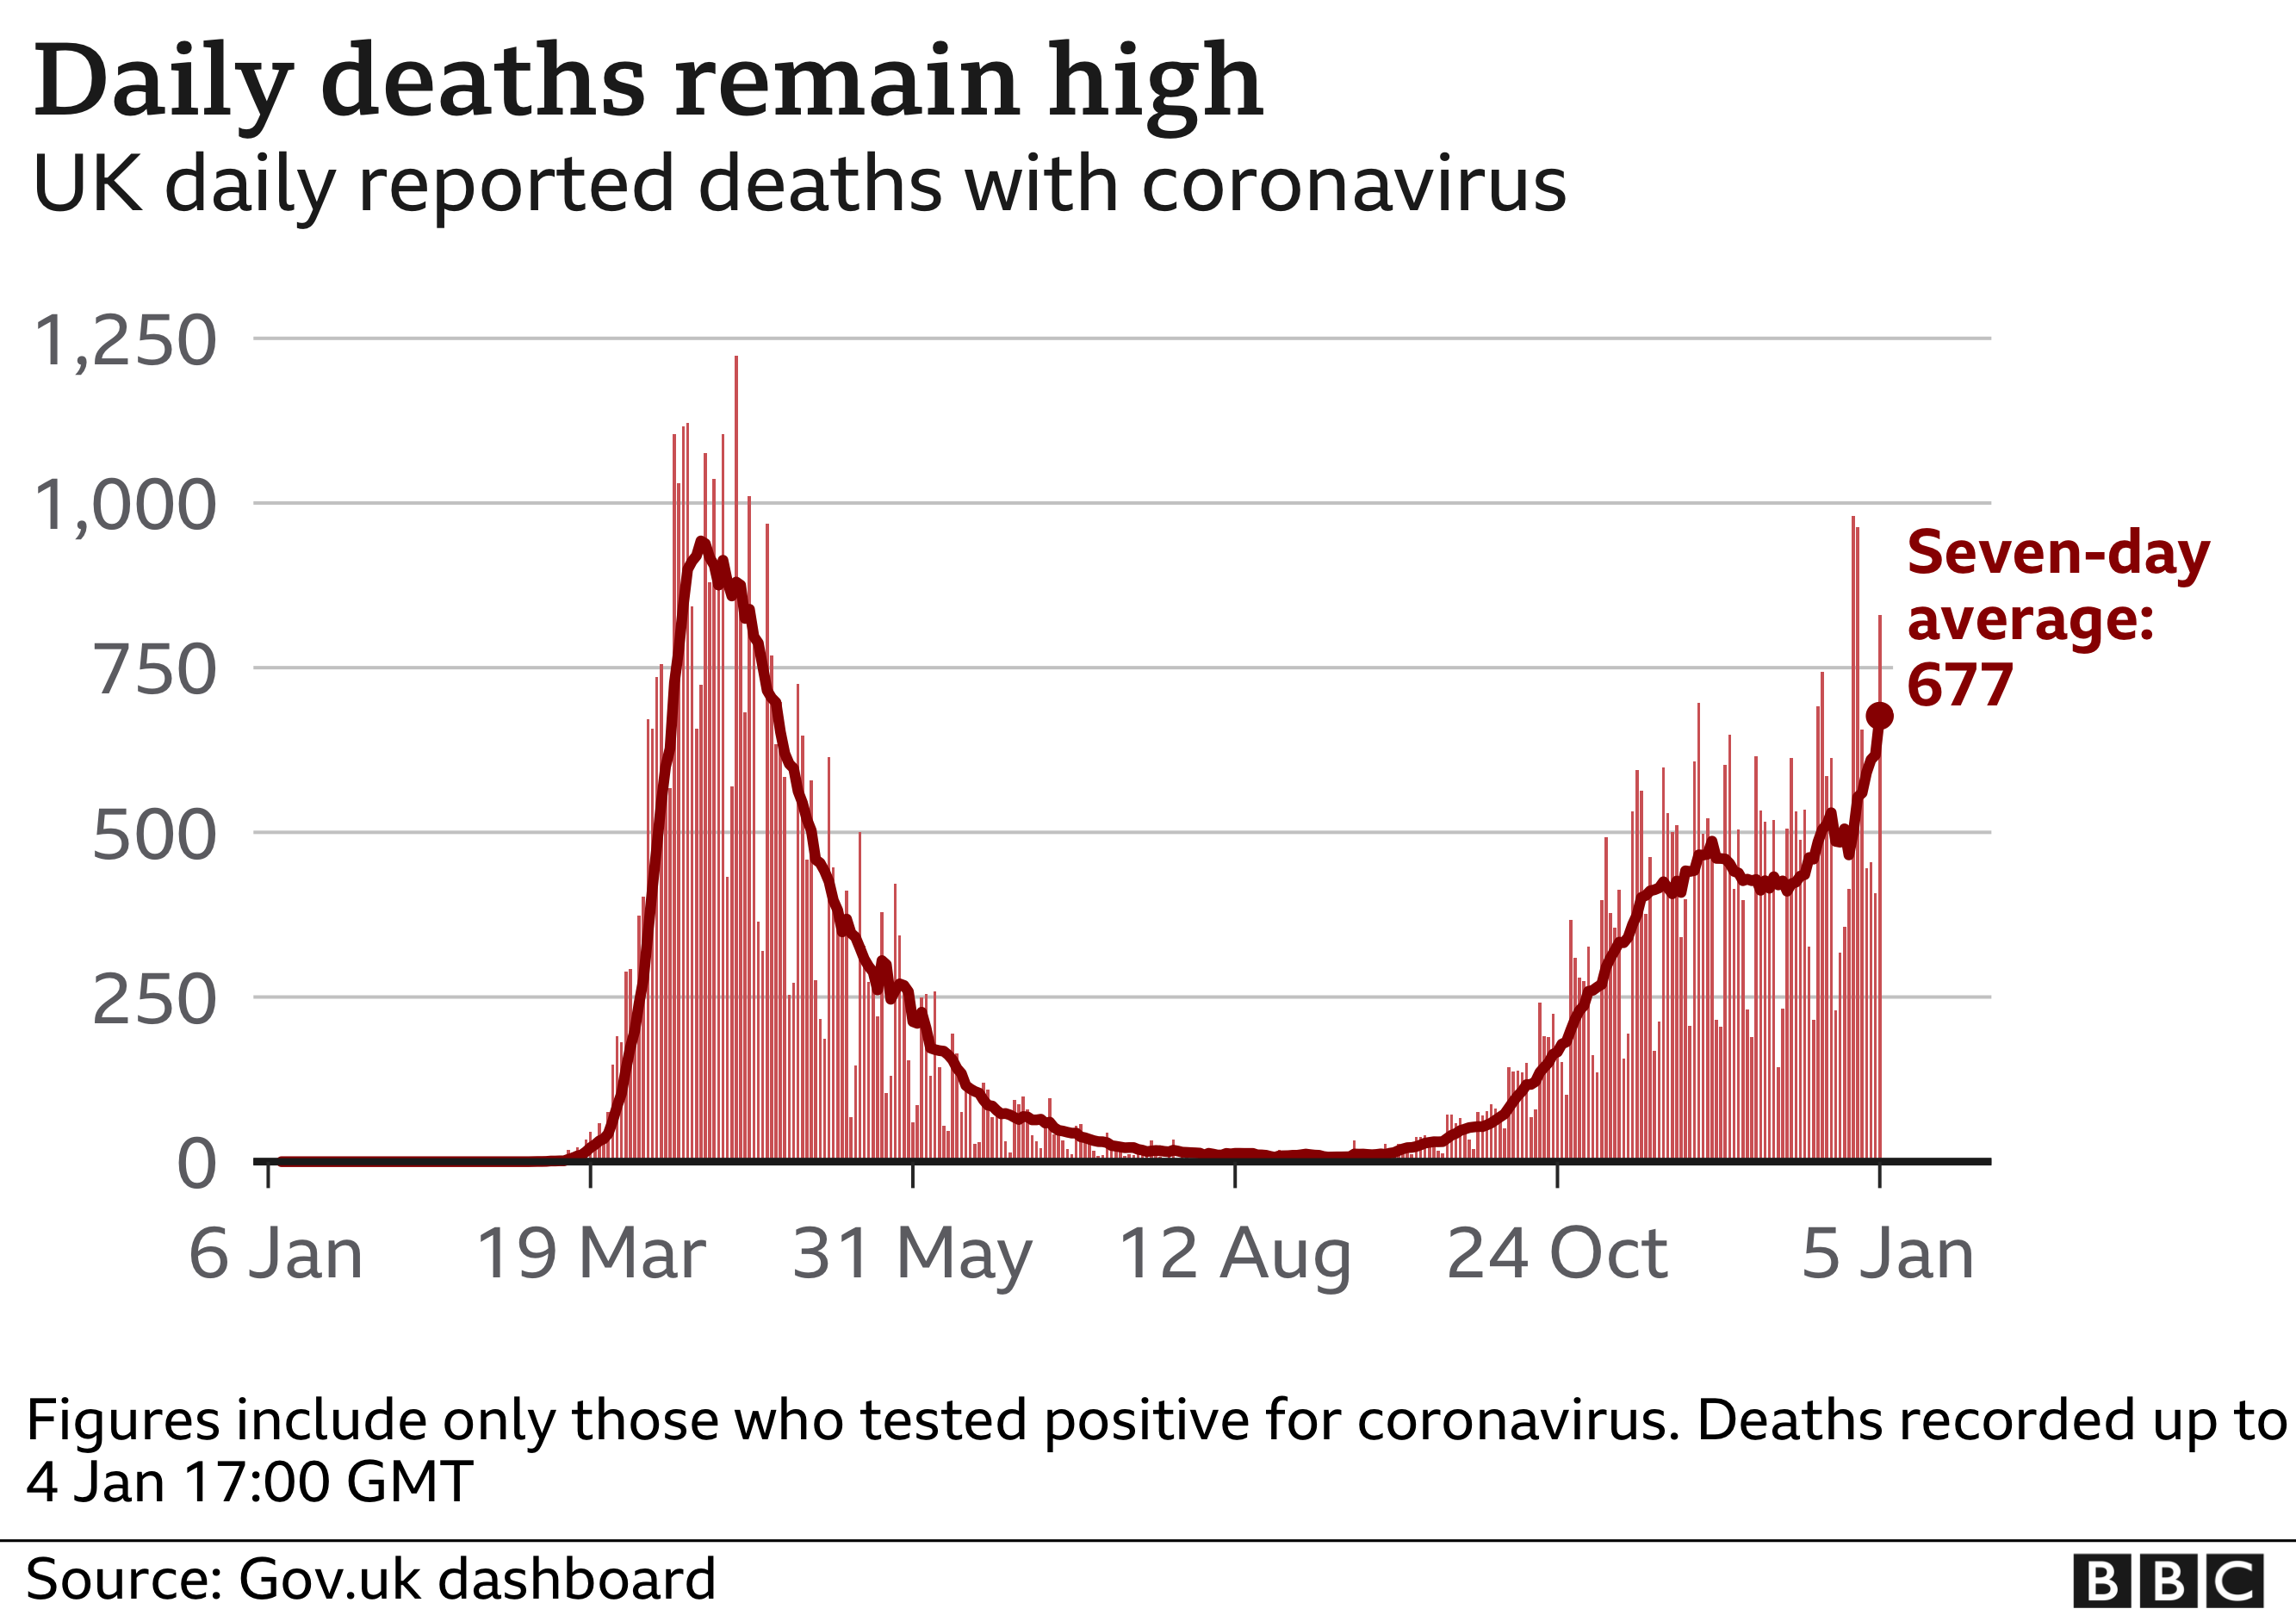 Chart showing daily deaths and rolling 7-day average